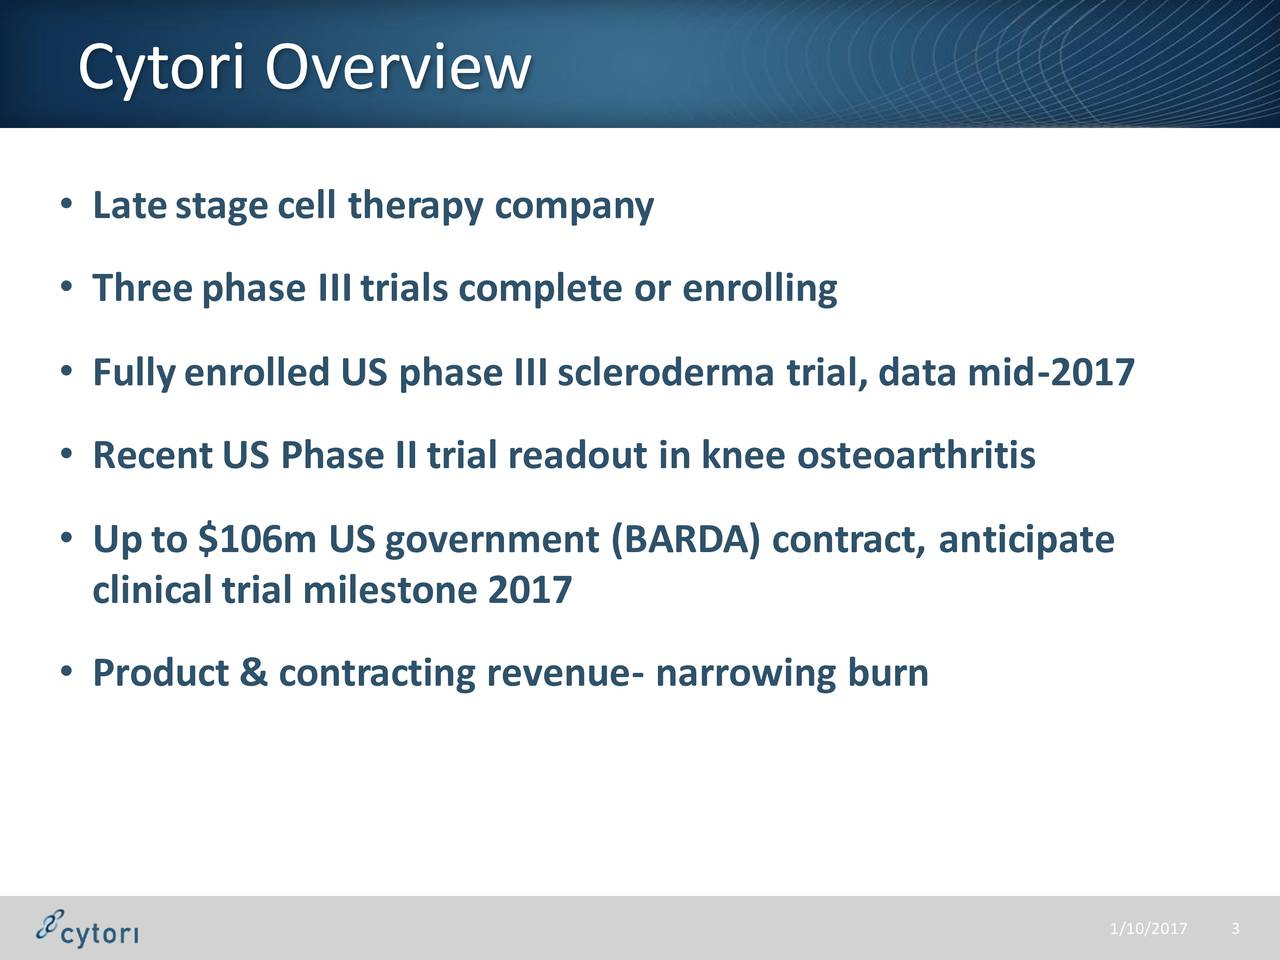 Latestagecell therapy company Threephase IIItrials complete or enrolling Fullyenrolled US phase III scleroderma trial, data mid-2017 RecentUS Phase II trial readout in knee osteoarthritis Upto $106m US government (BARDA) contract, anticipate clinicaltrial milestone 2017 Product & contracting revenue- narrowing burn 1/10/2013